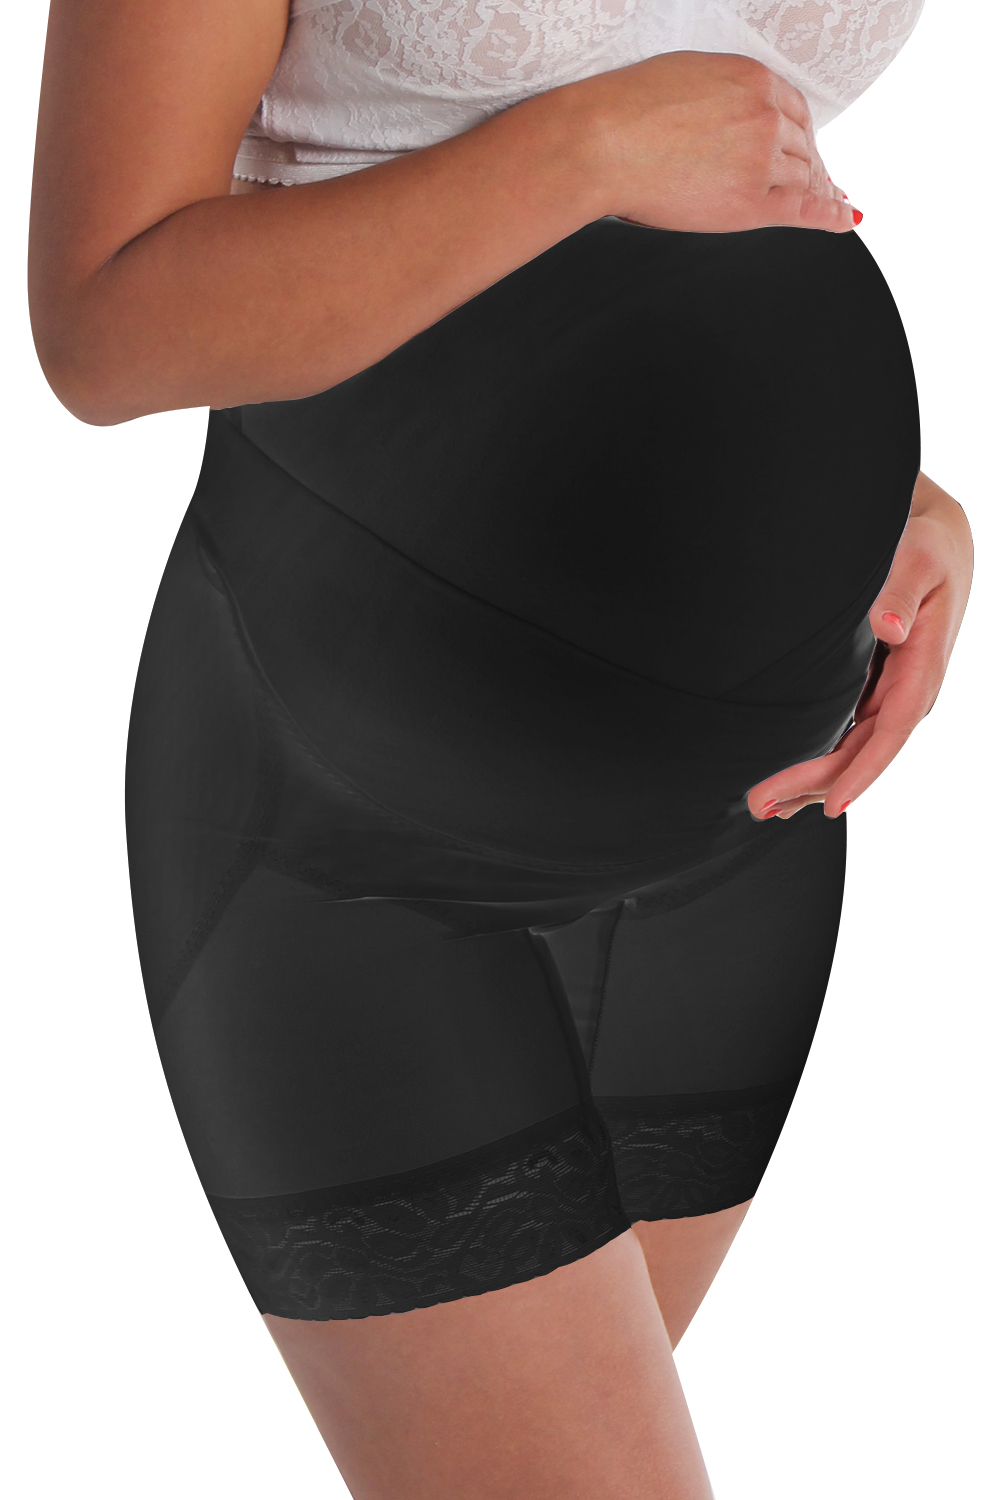 MATERNITY GIRDLE WHITE